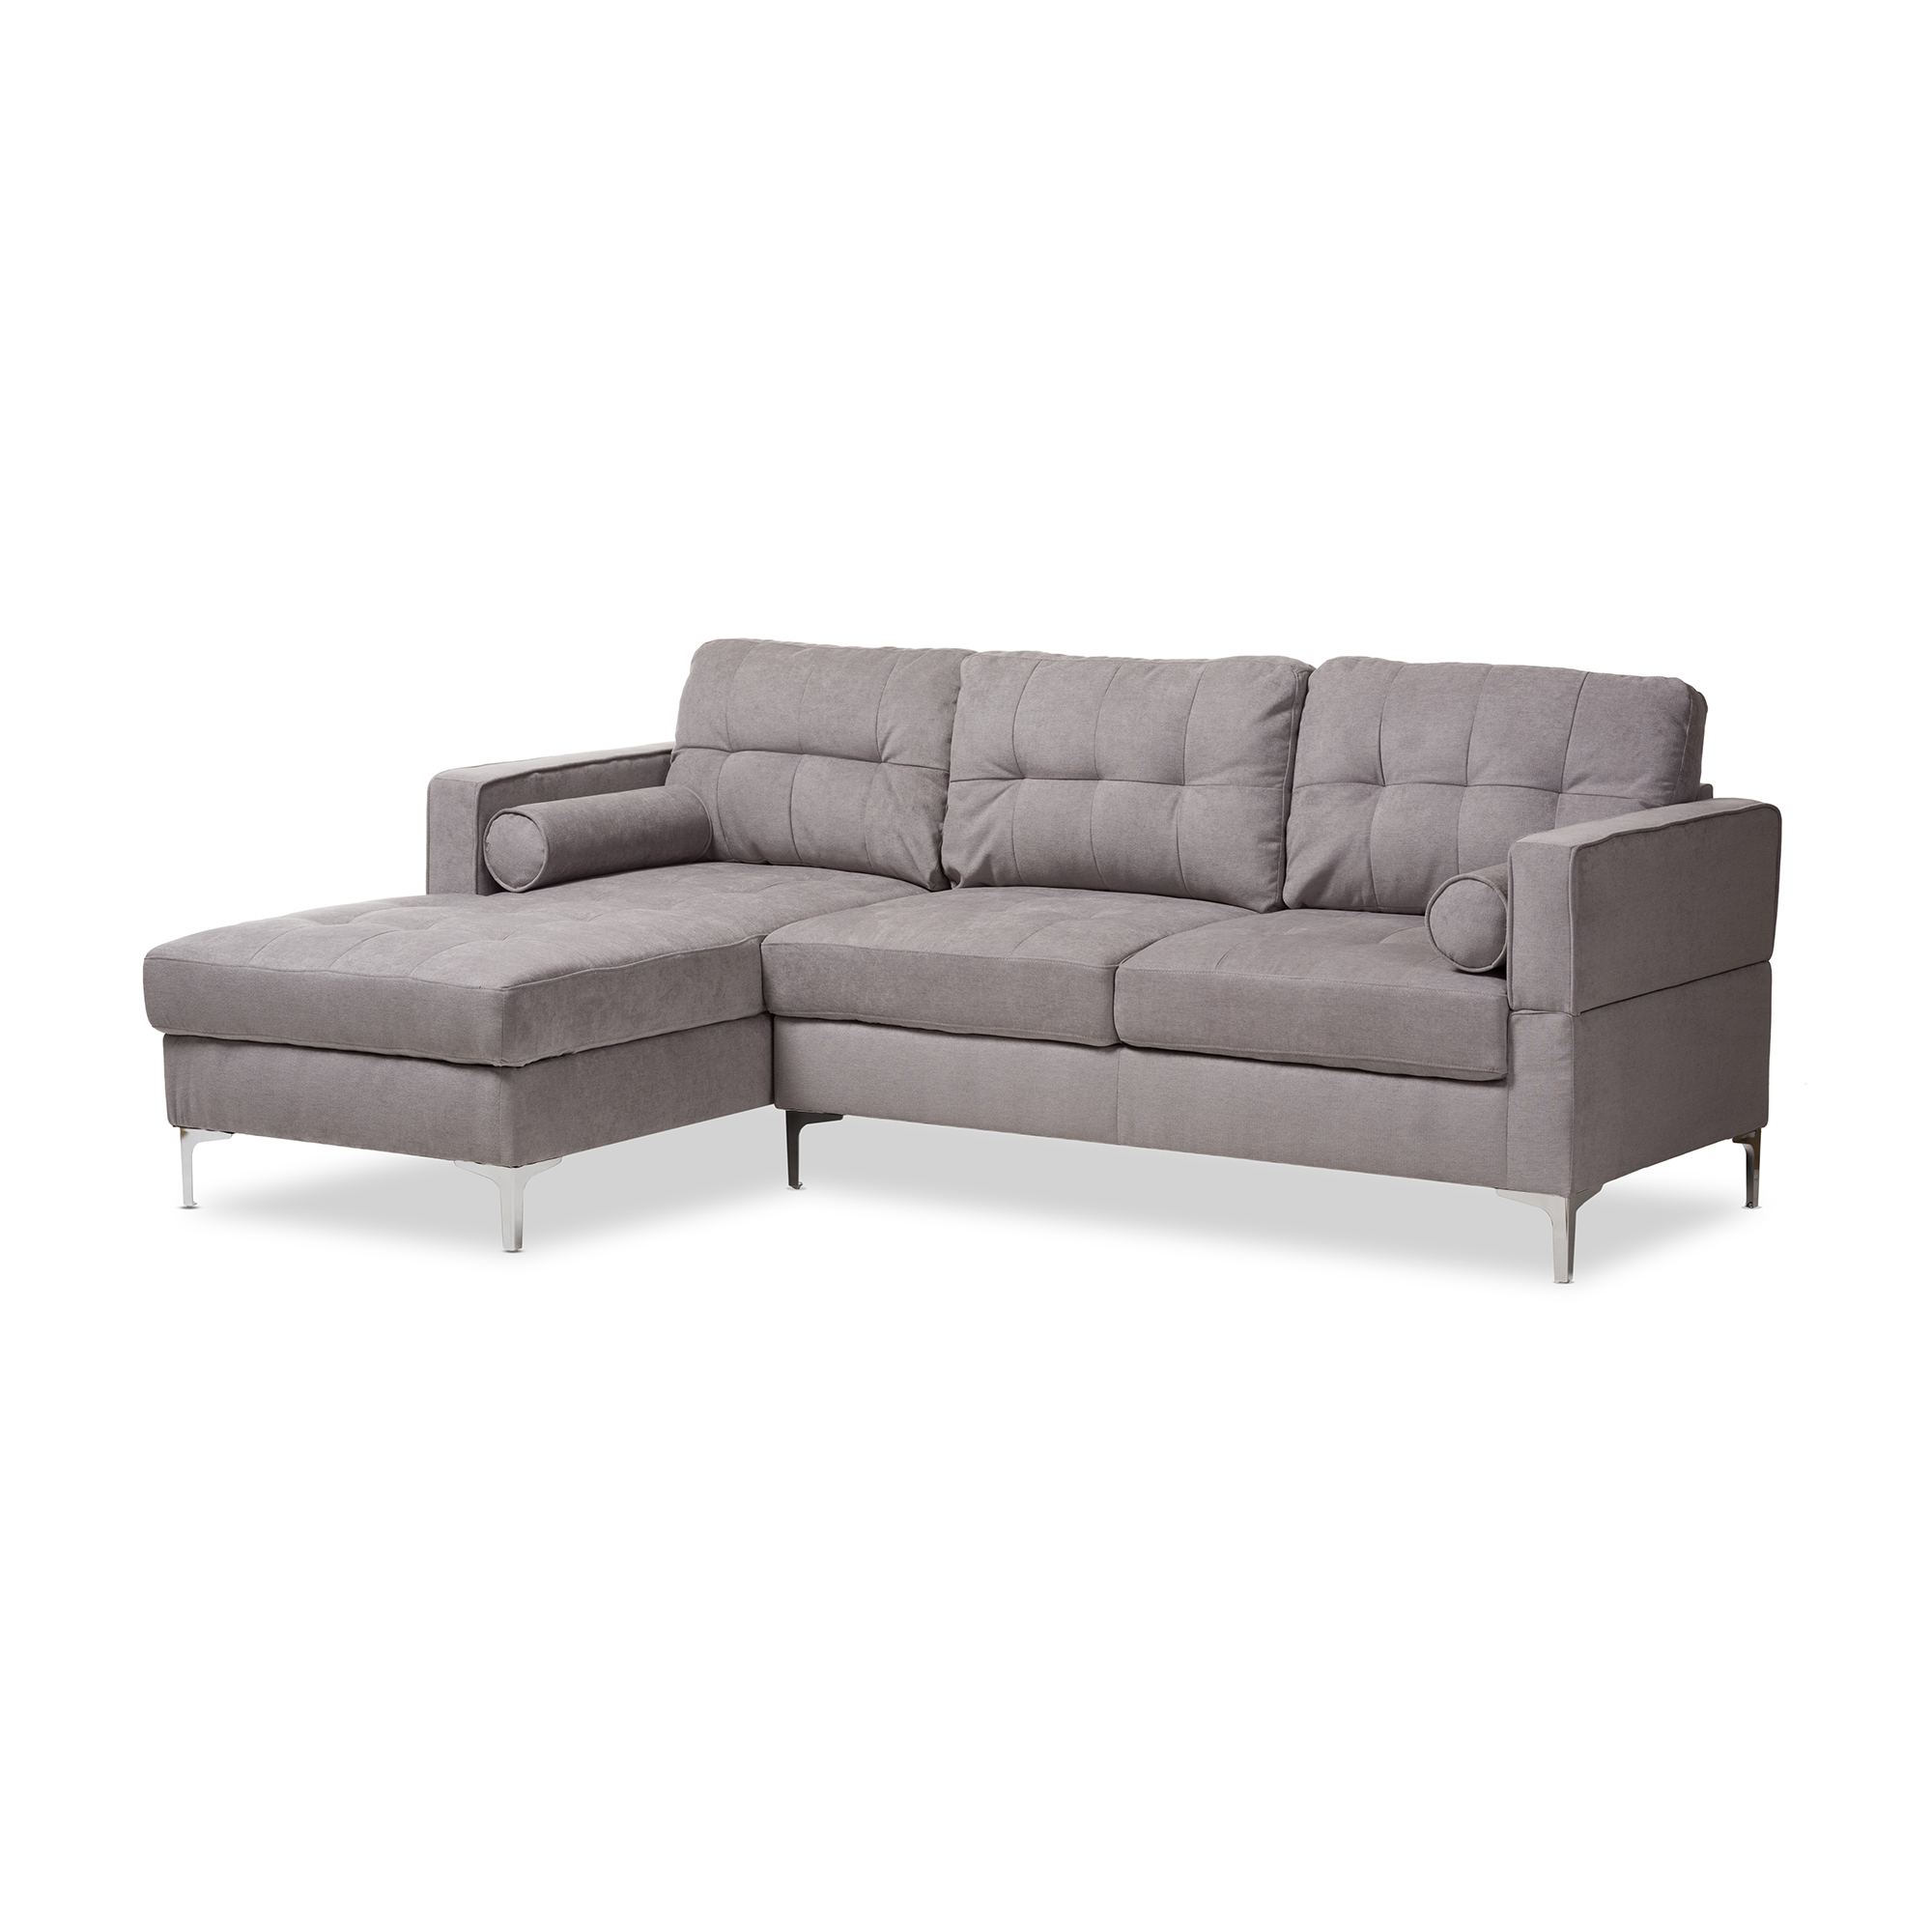 Affordable Modern Sofas: Baxton Studio Mireille Modern And Contemporary Light Grey